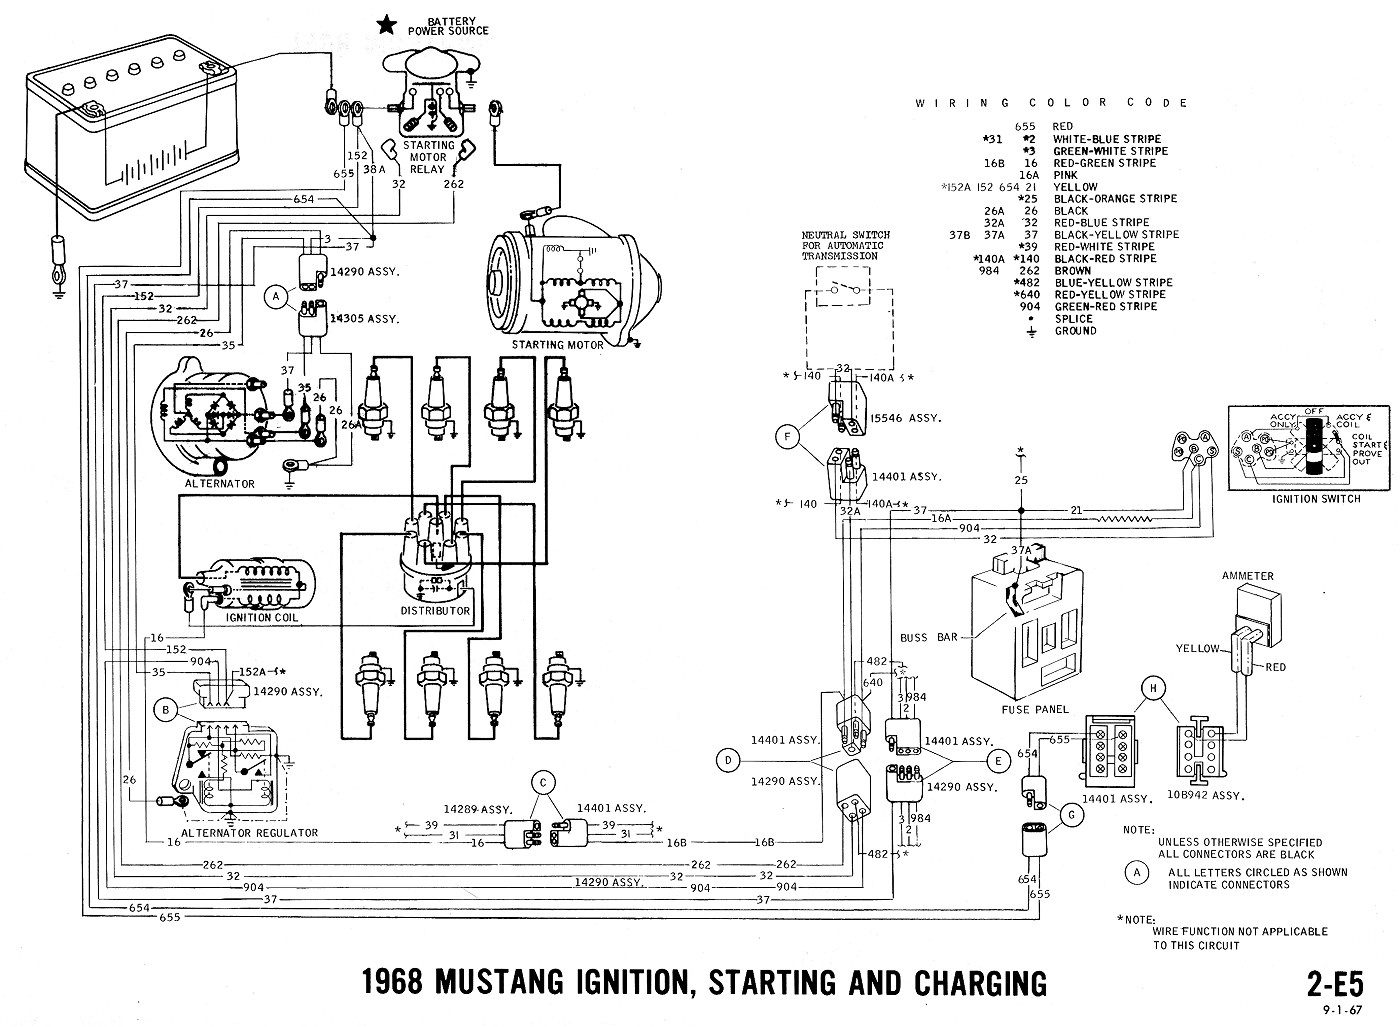 E5 1968 mustang wiring diagrams evolving software on 73 mustang charging wire harness